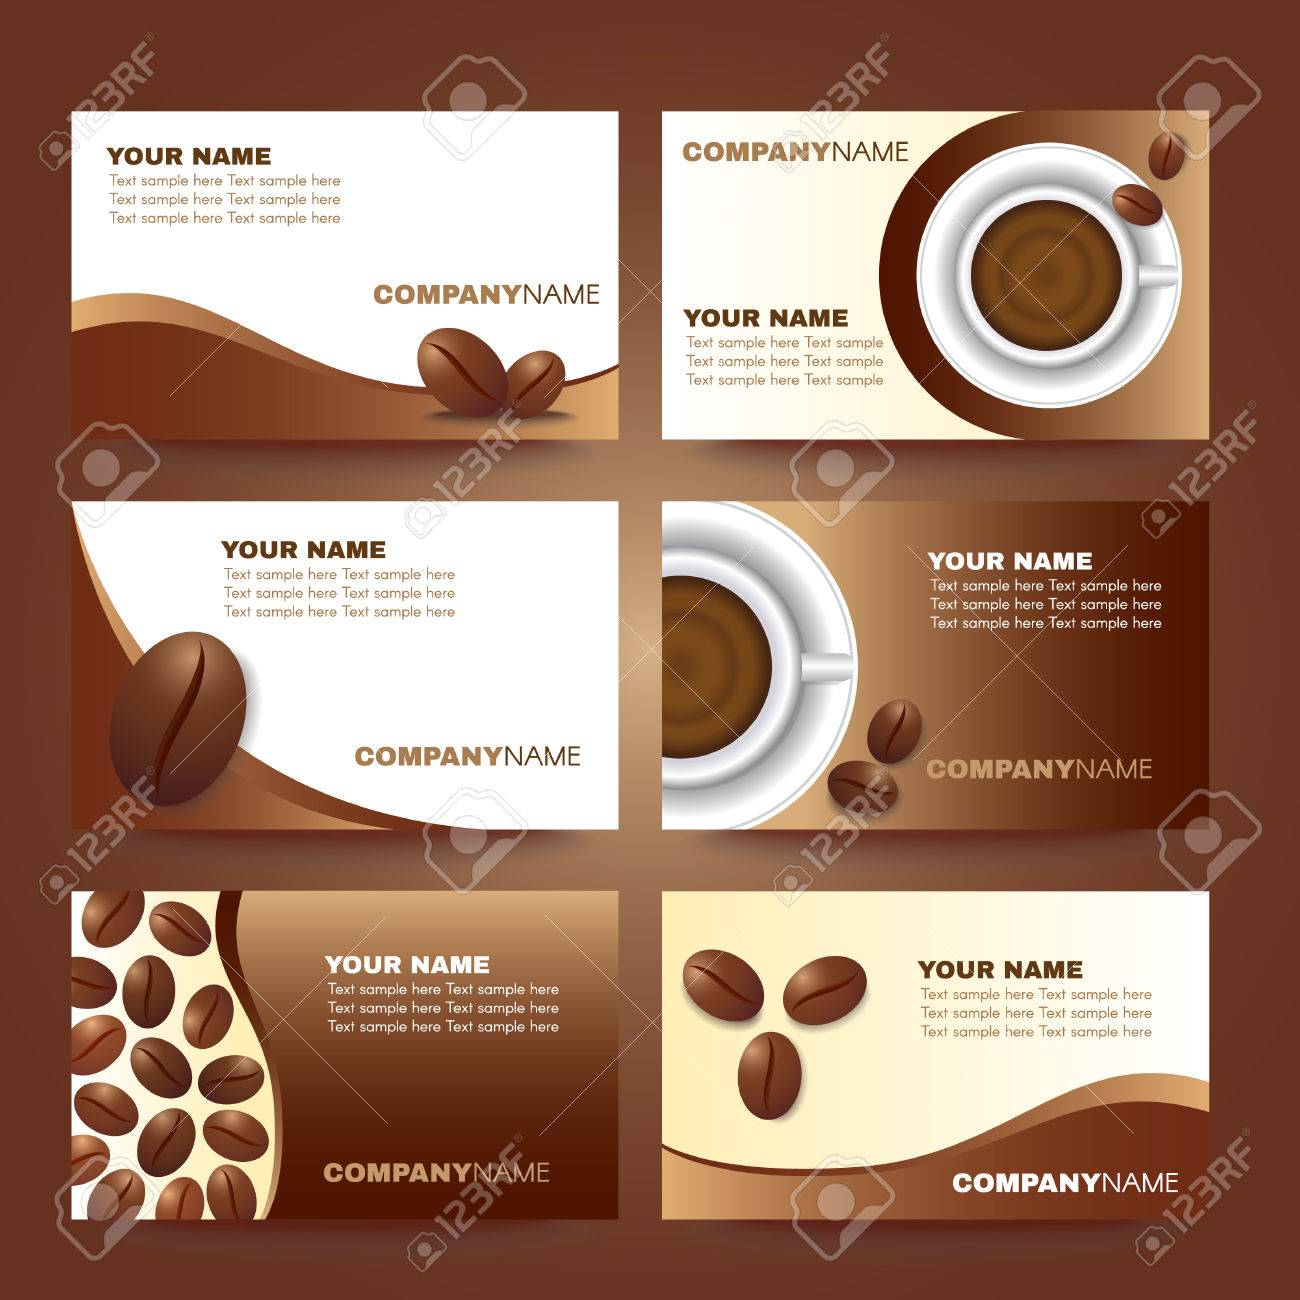 Coffee business card template vector set design royalty free coffee business card template vector set design stock vector 45062488 flashek Gallery